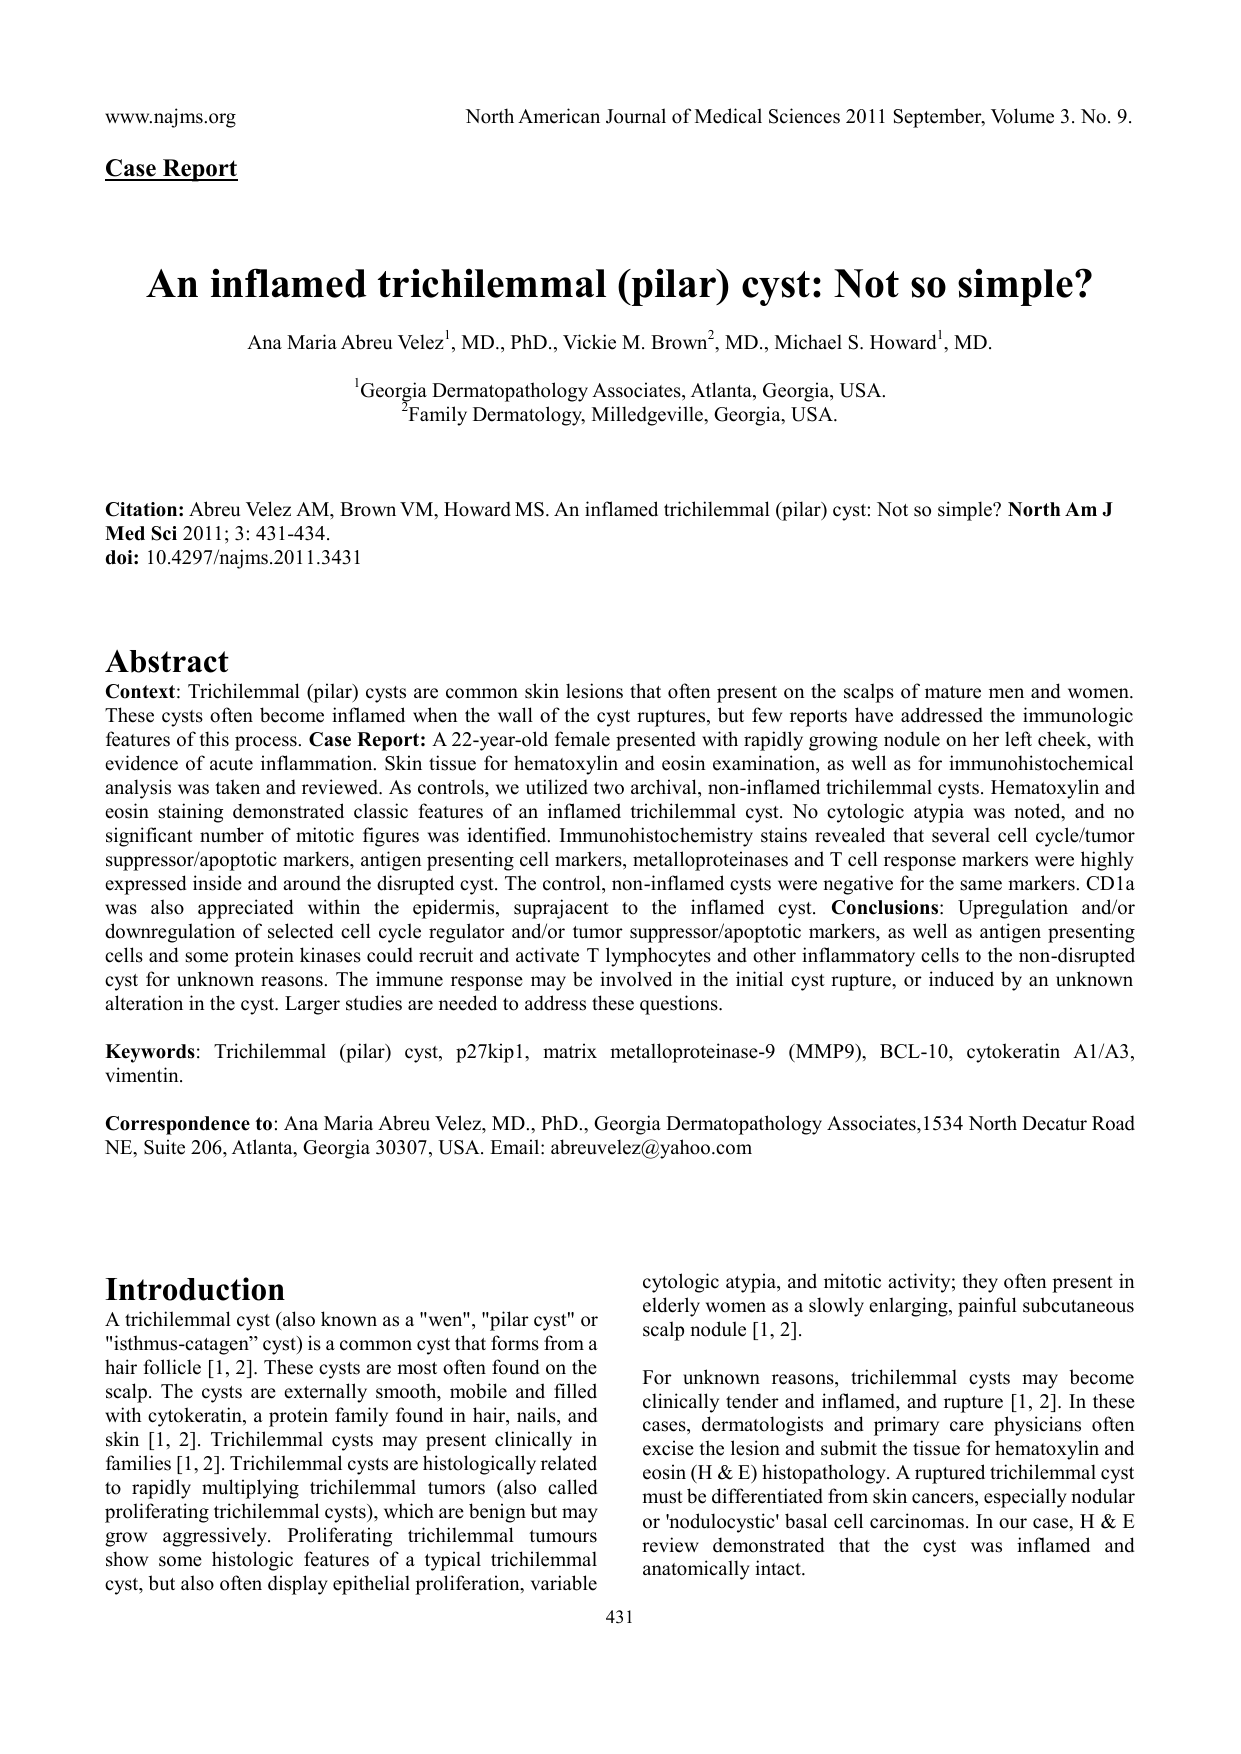 An inflamed trichilemmal cyst not so simple